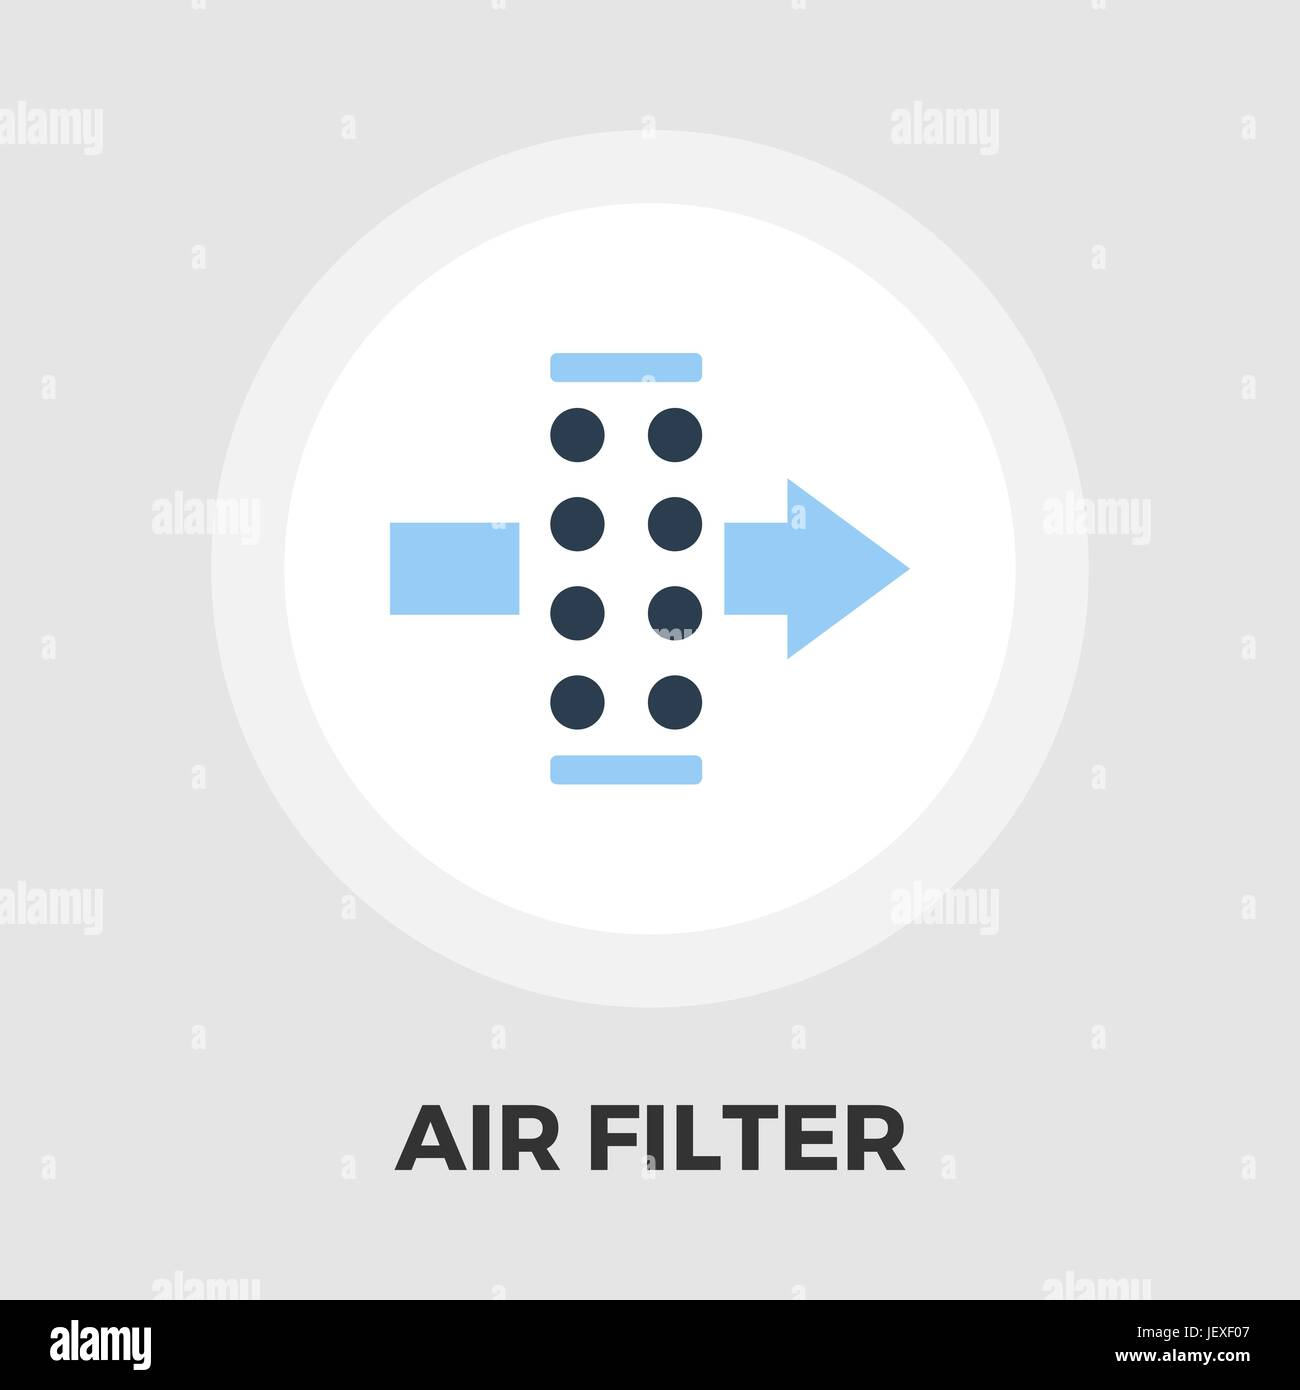 Filter icon flat